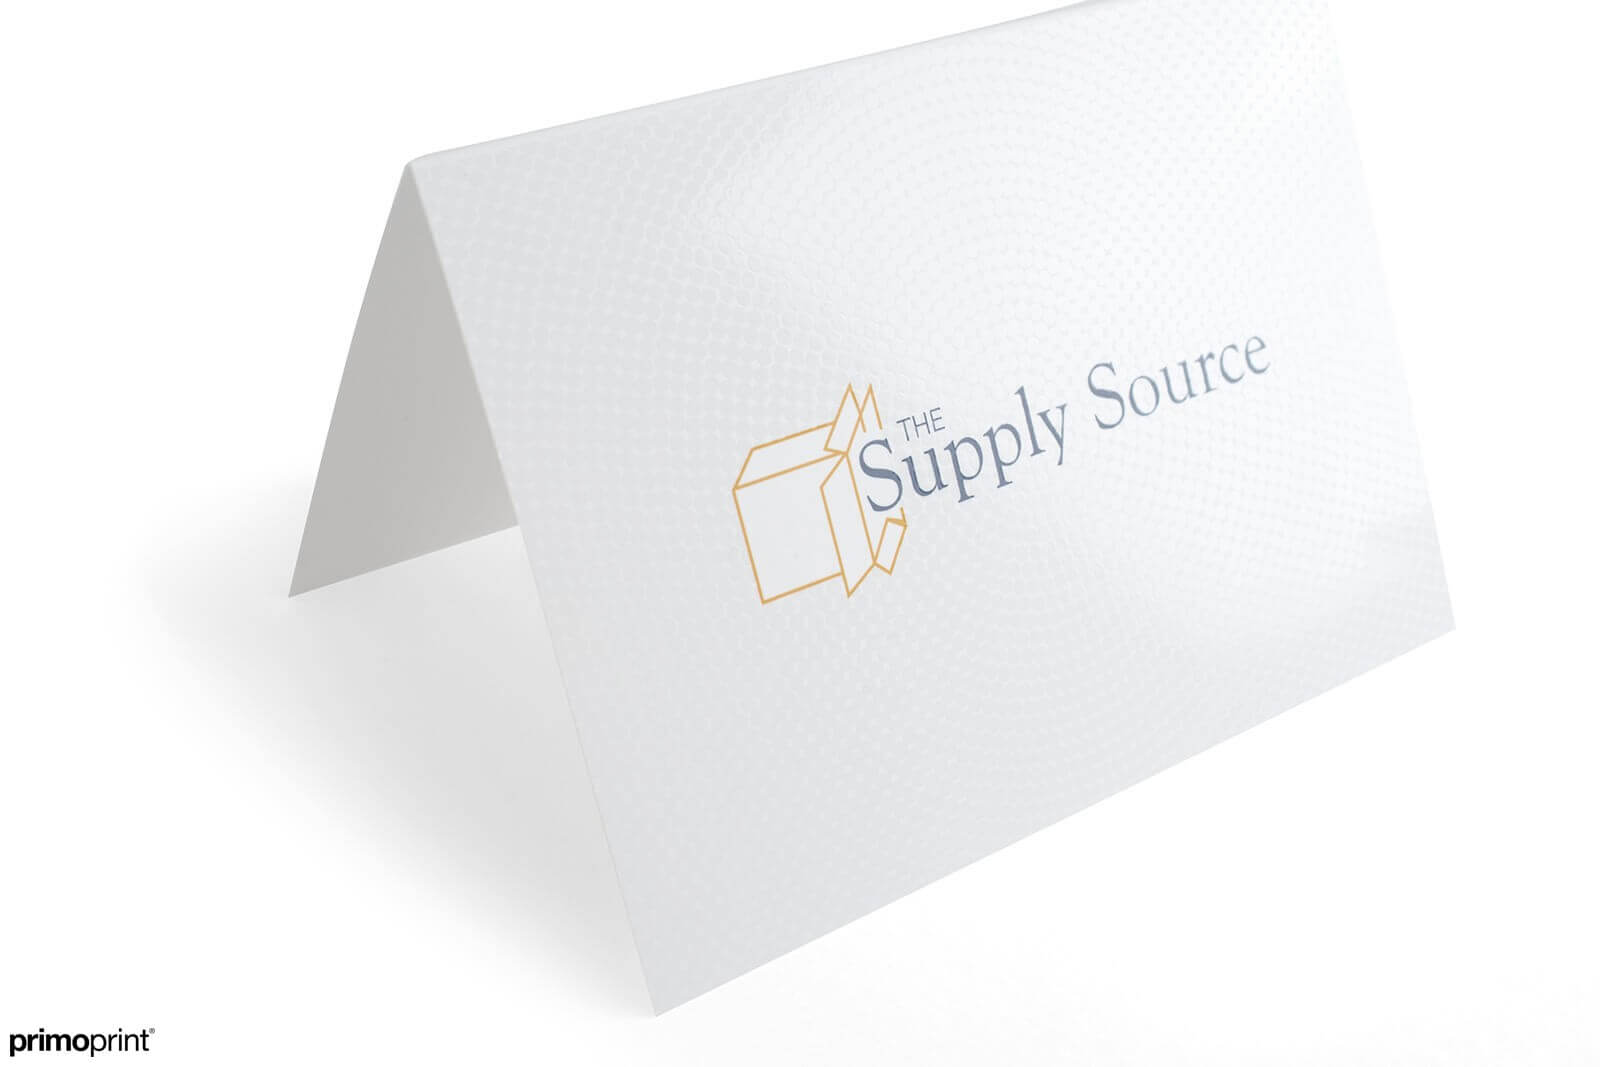 Elegant 16PT Silk Spot UV Greeting Card Printed by Primoprint.